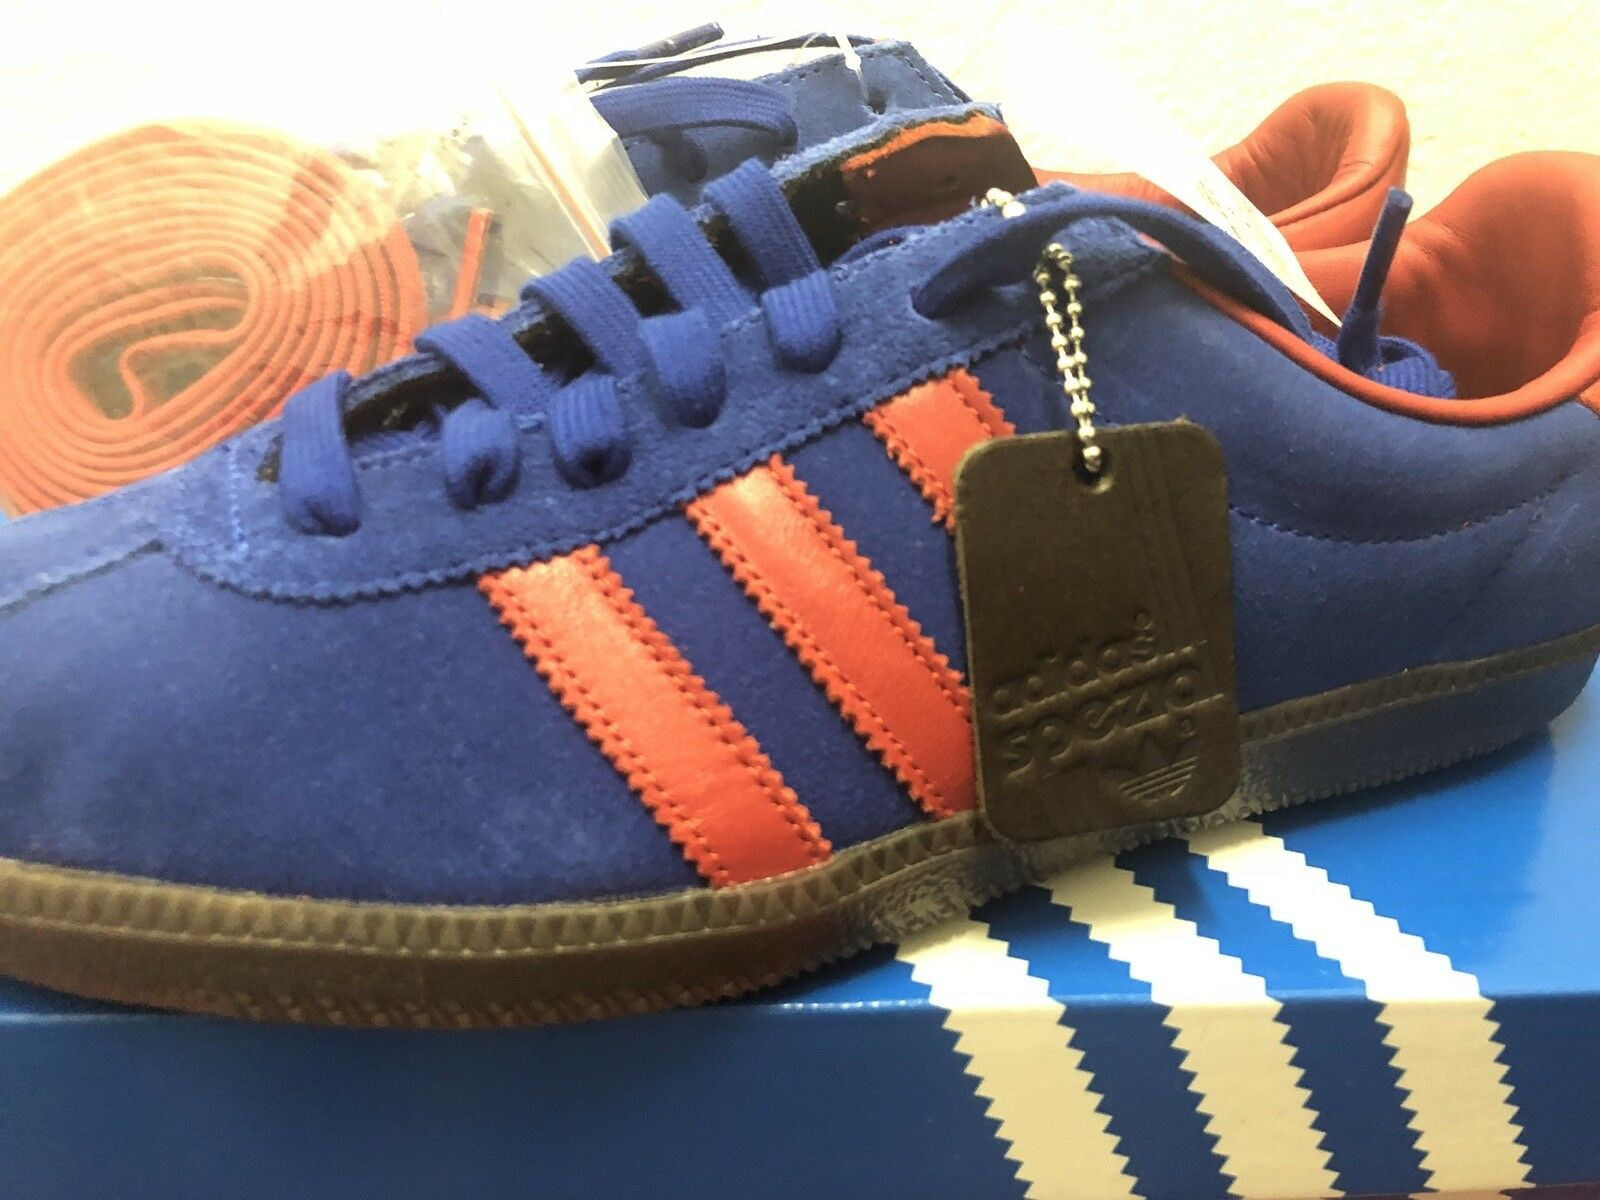 Adidas Spritus SPZL Spezial Men's Size 7 Royal bluee   Red Running shoes CG2922